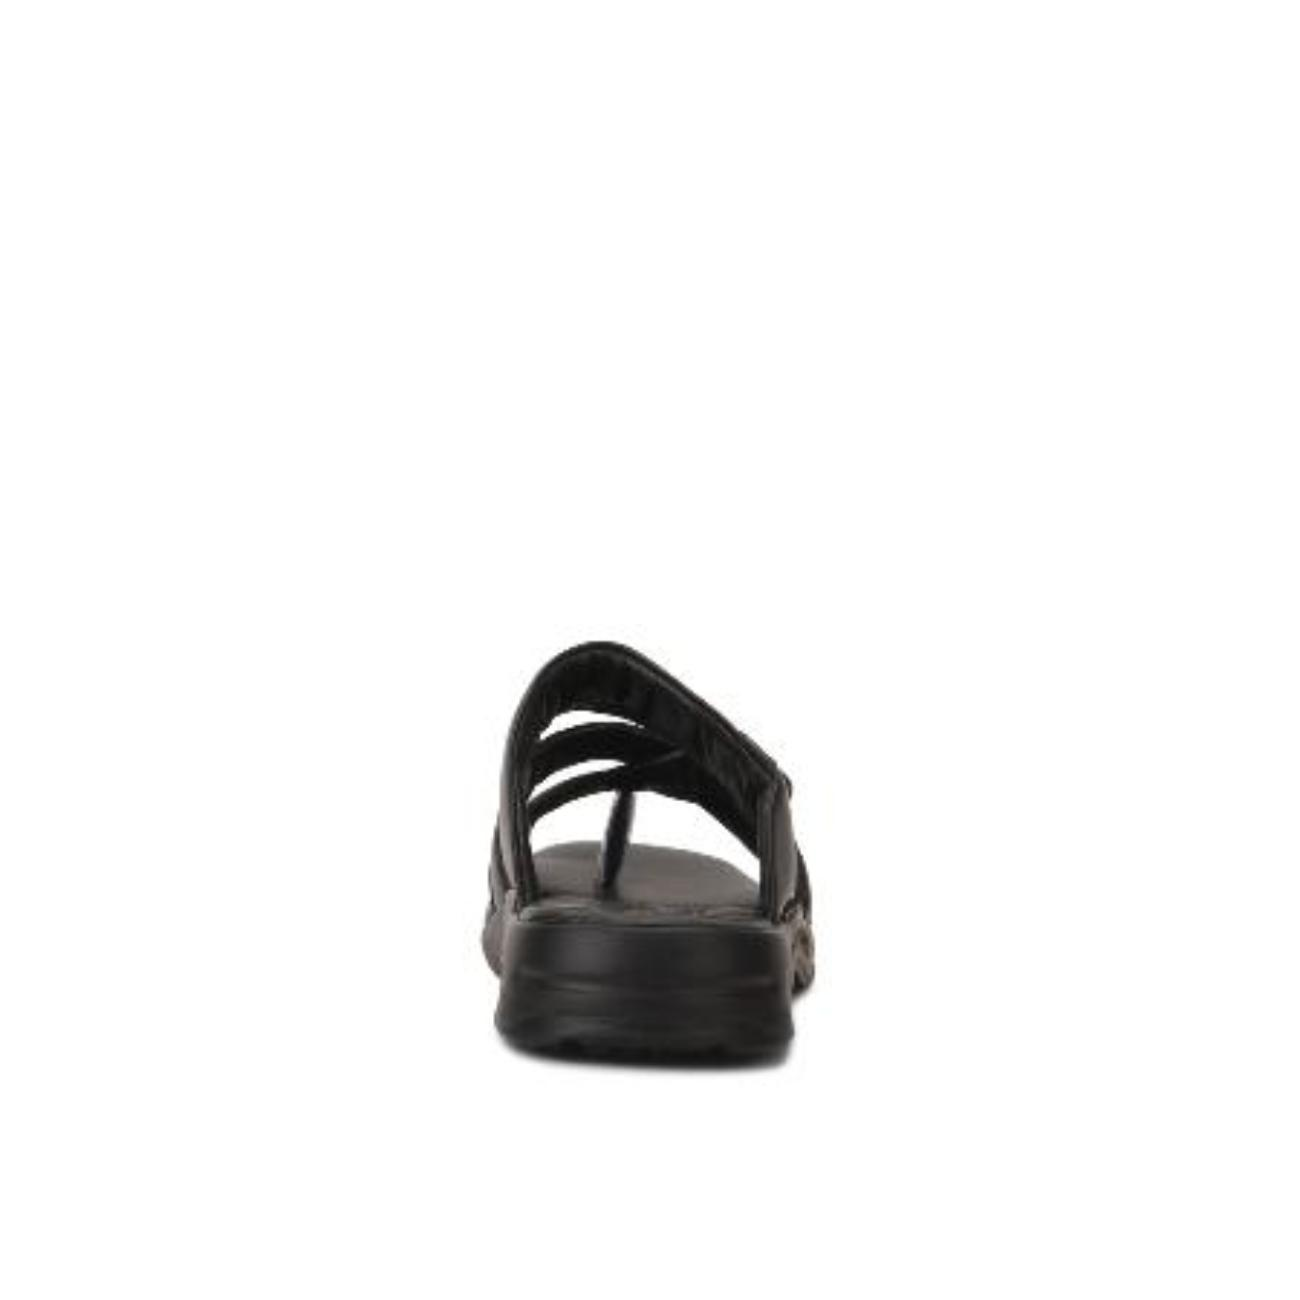 black slip-on slippers from behind